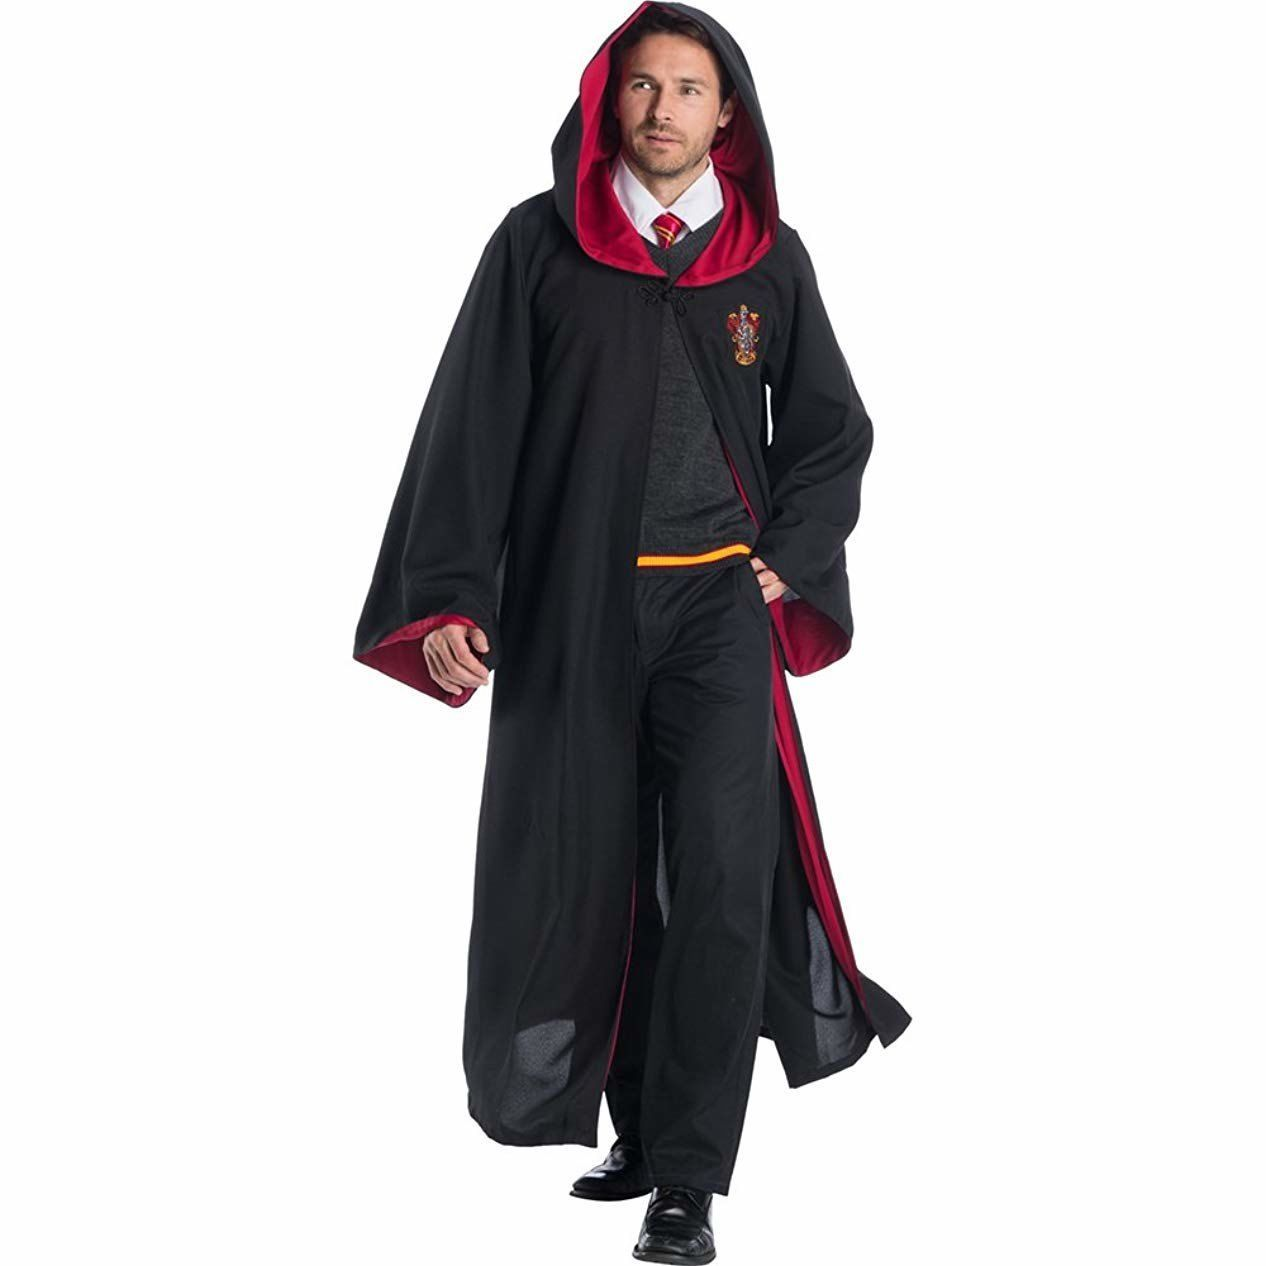 Charades Harry Potter Gryffindor Student Adult Unisex Halloween Costume 03581